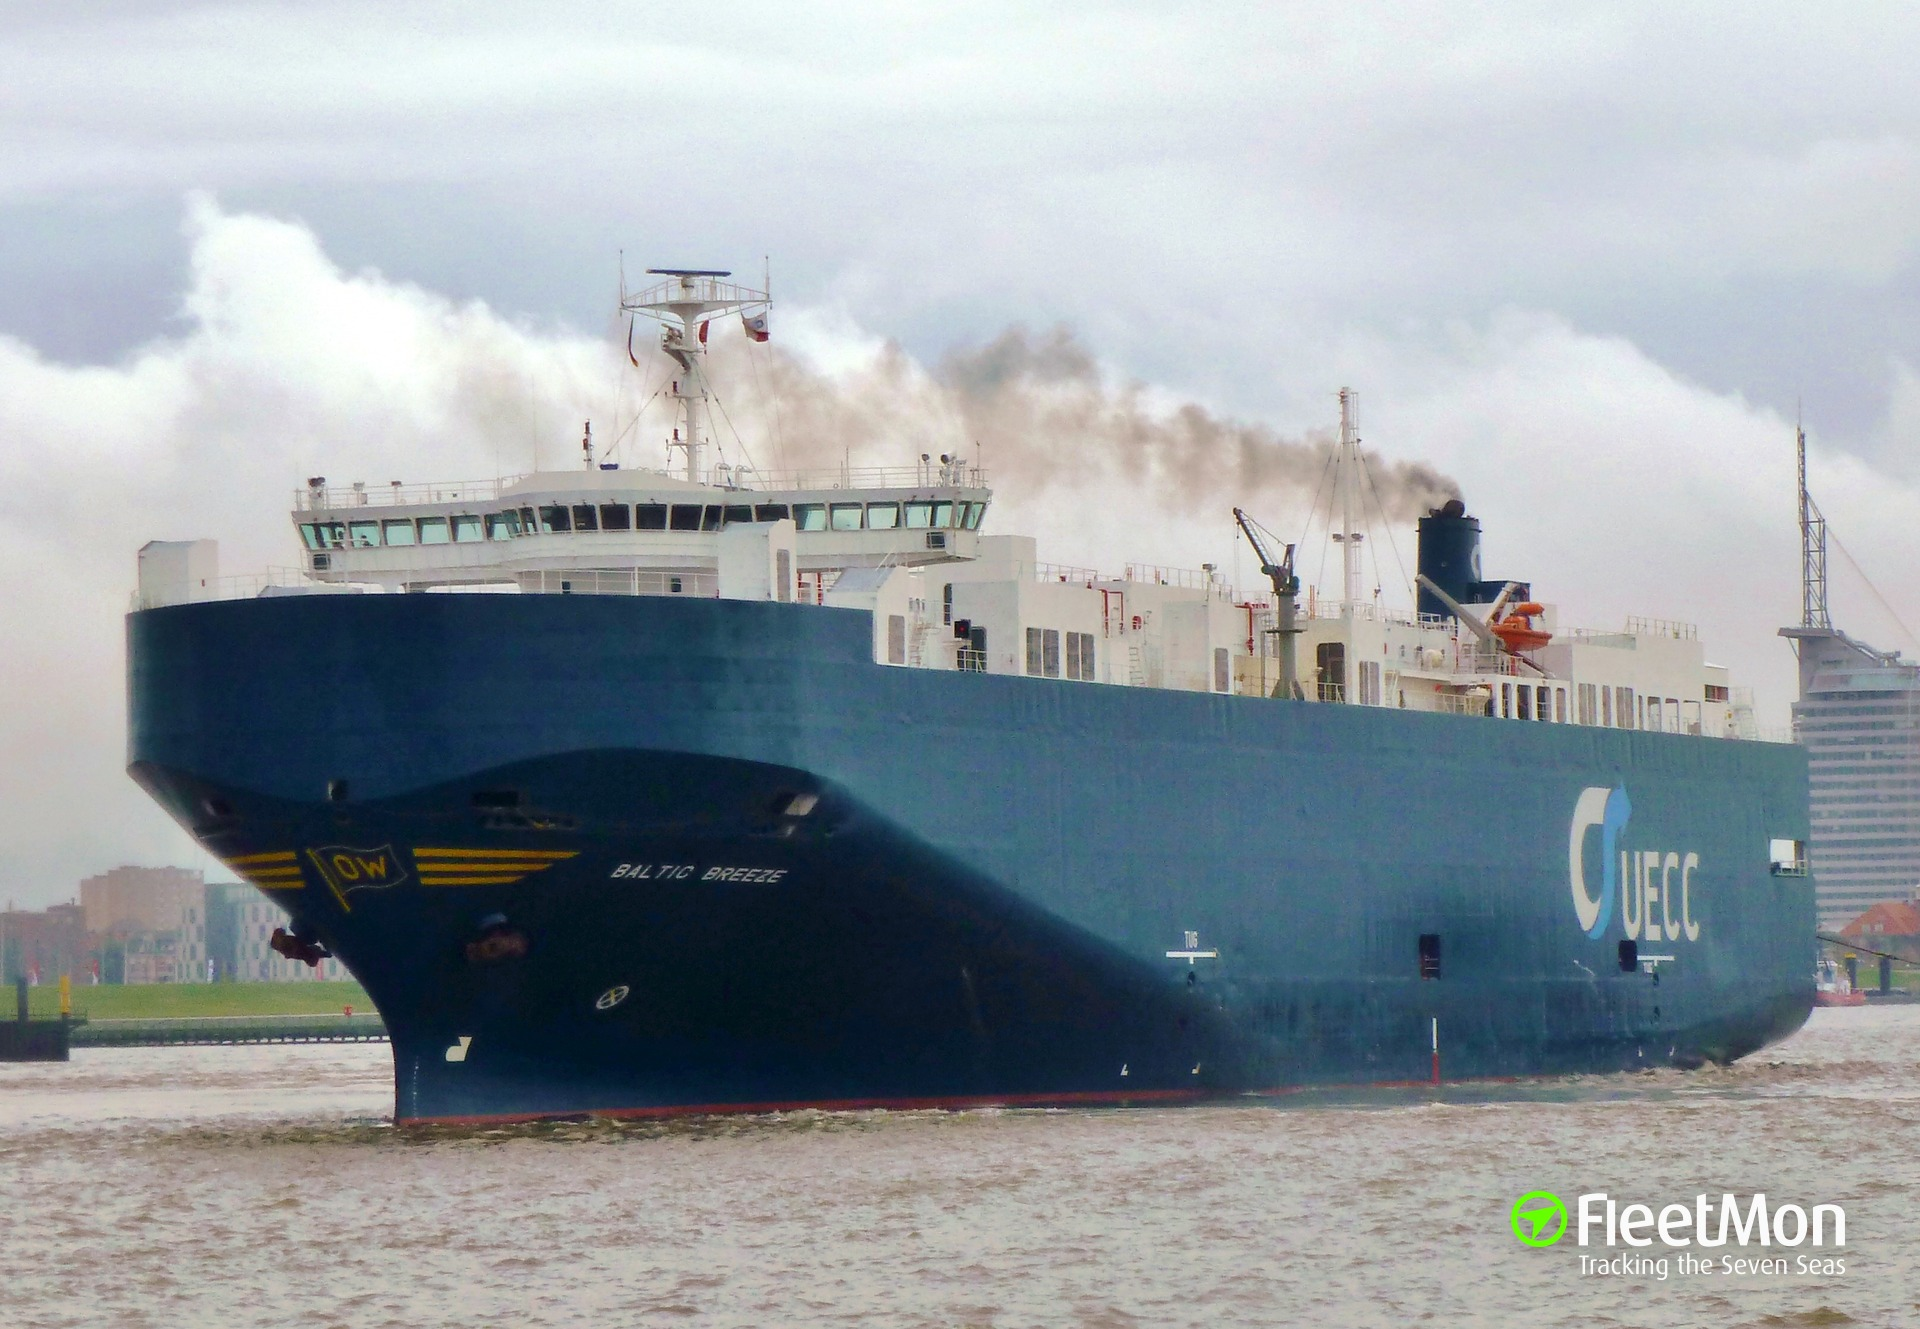 Car carrier disabled by fire, North sea | BALTIC BREEZE